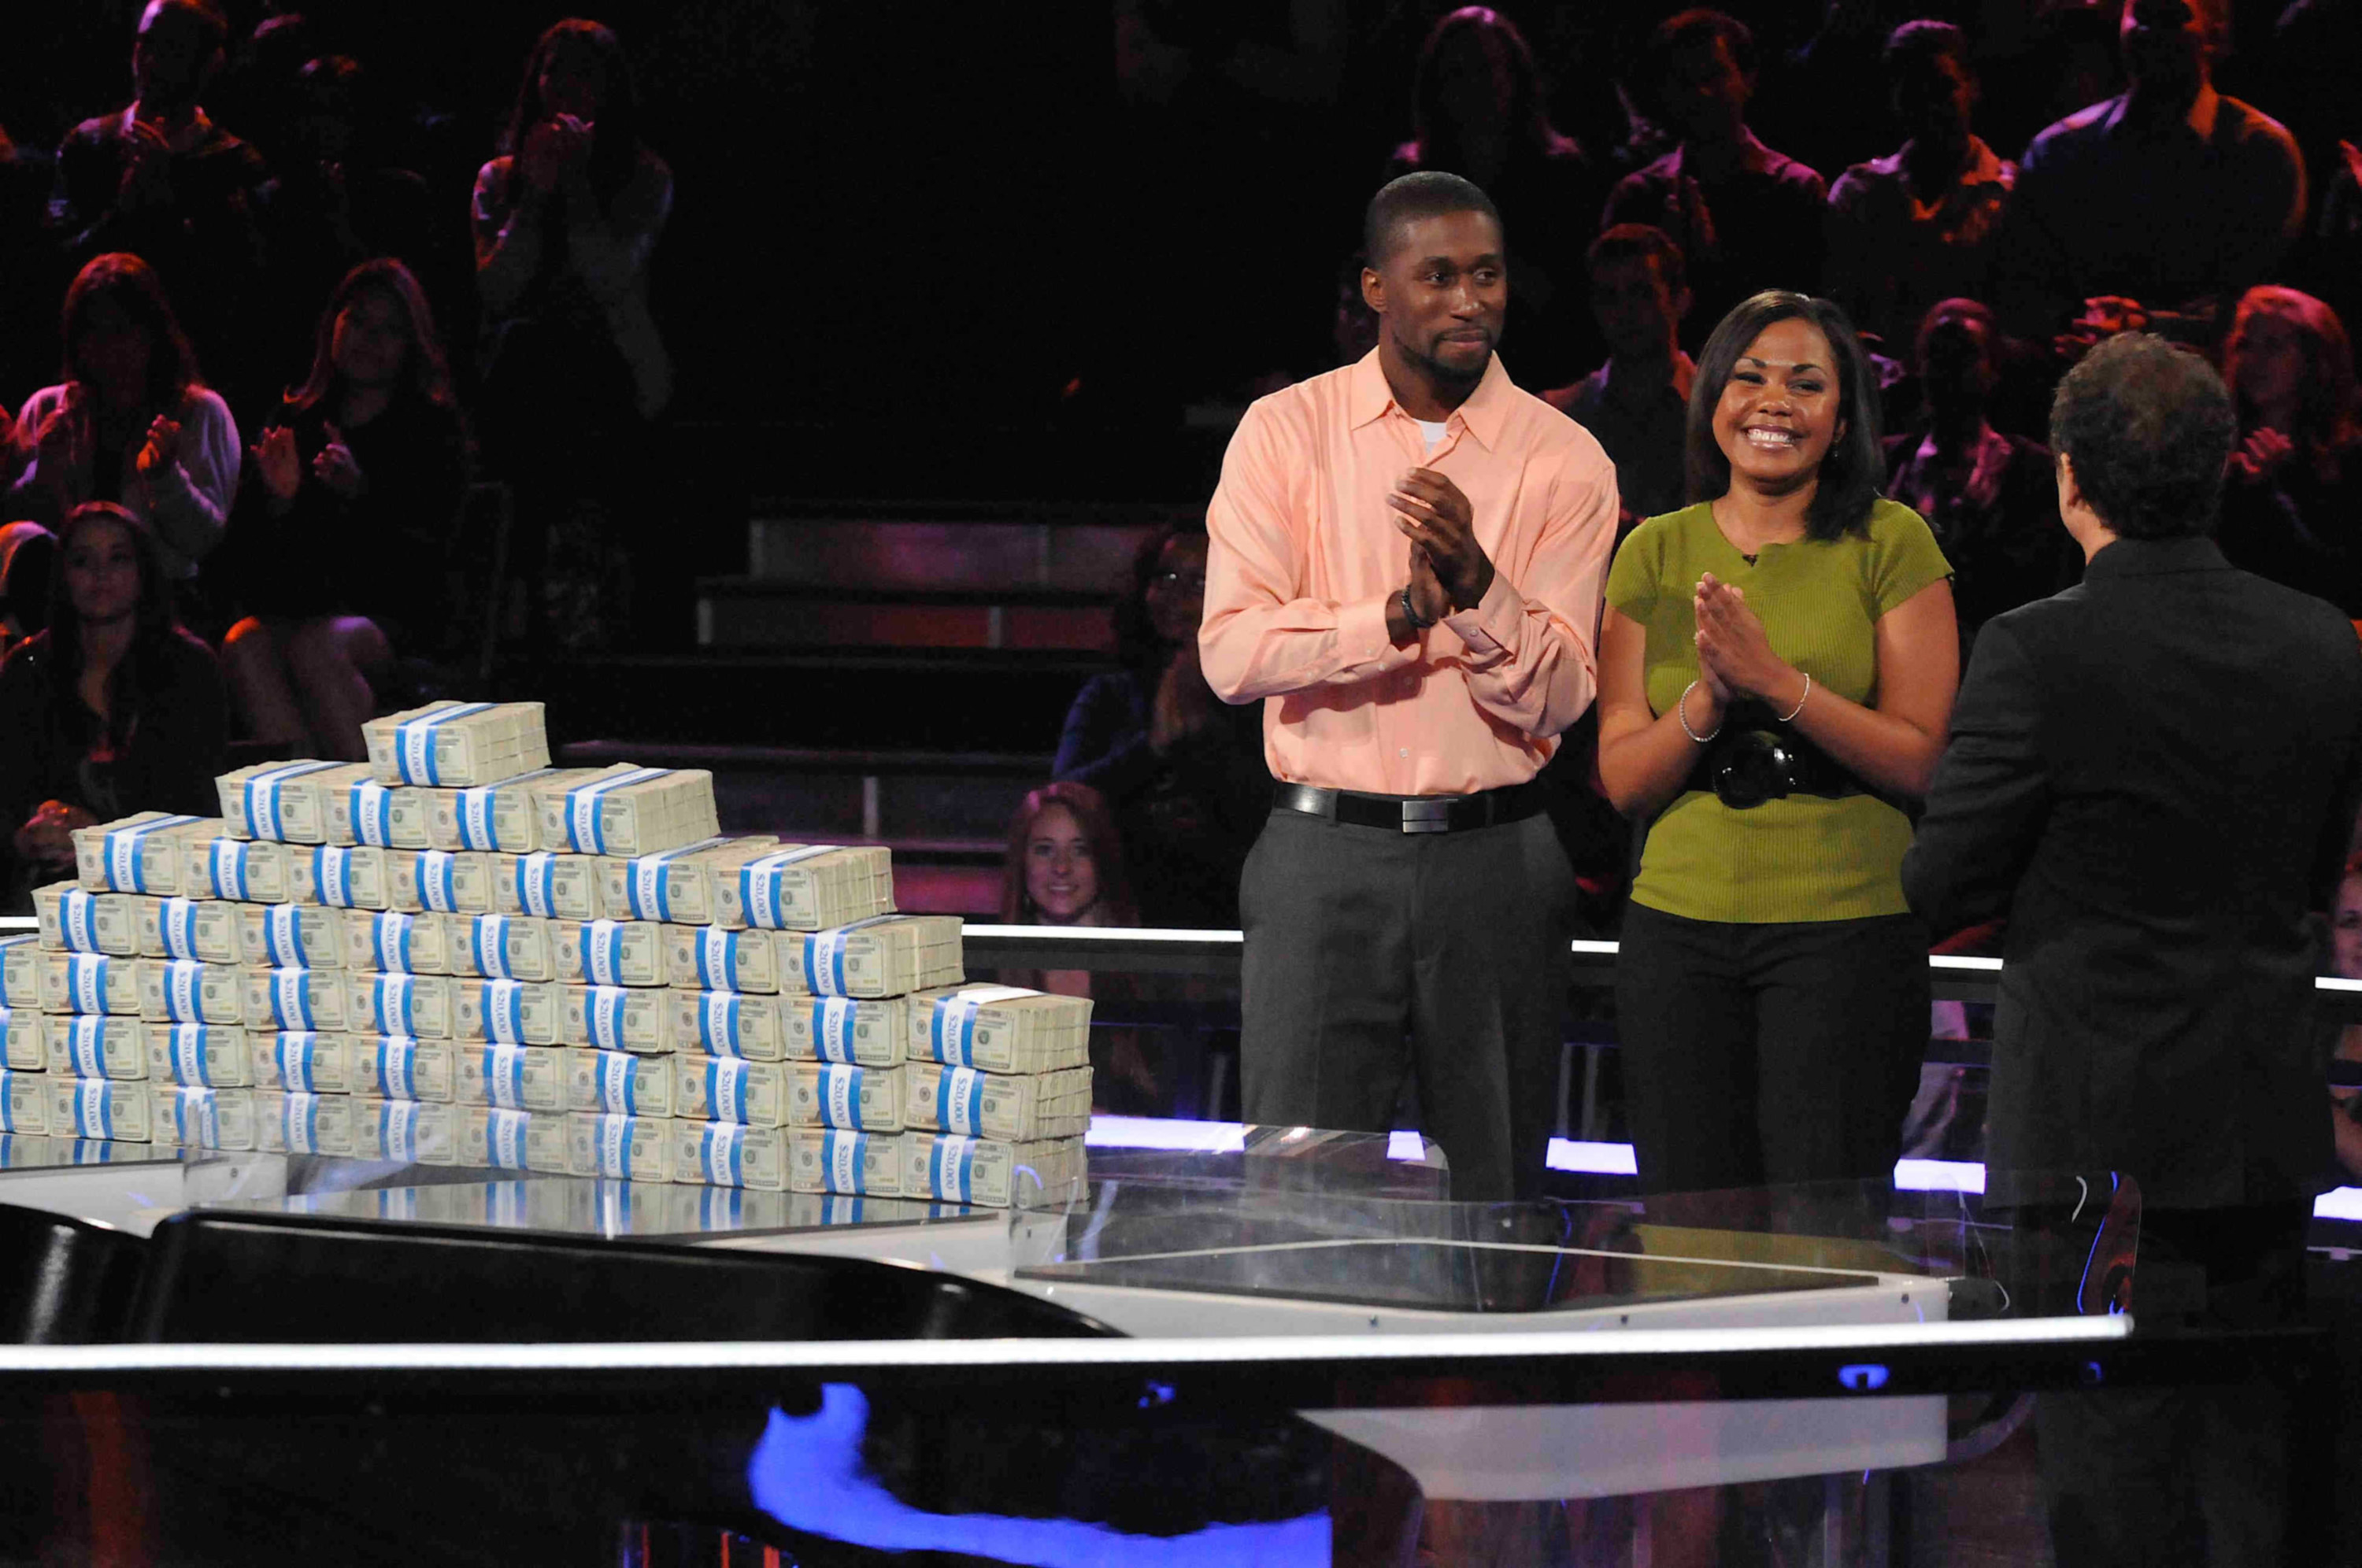 The two cheated contestants stand next to piles of money